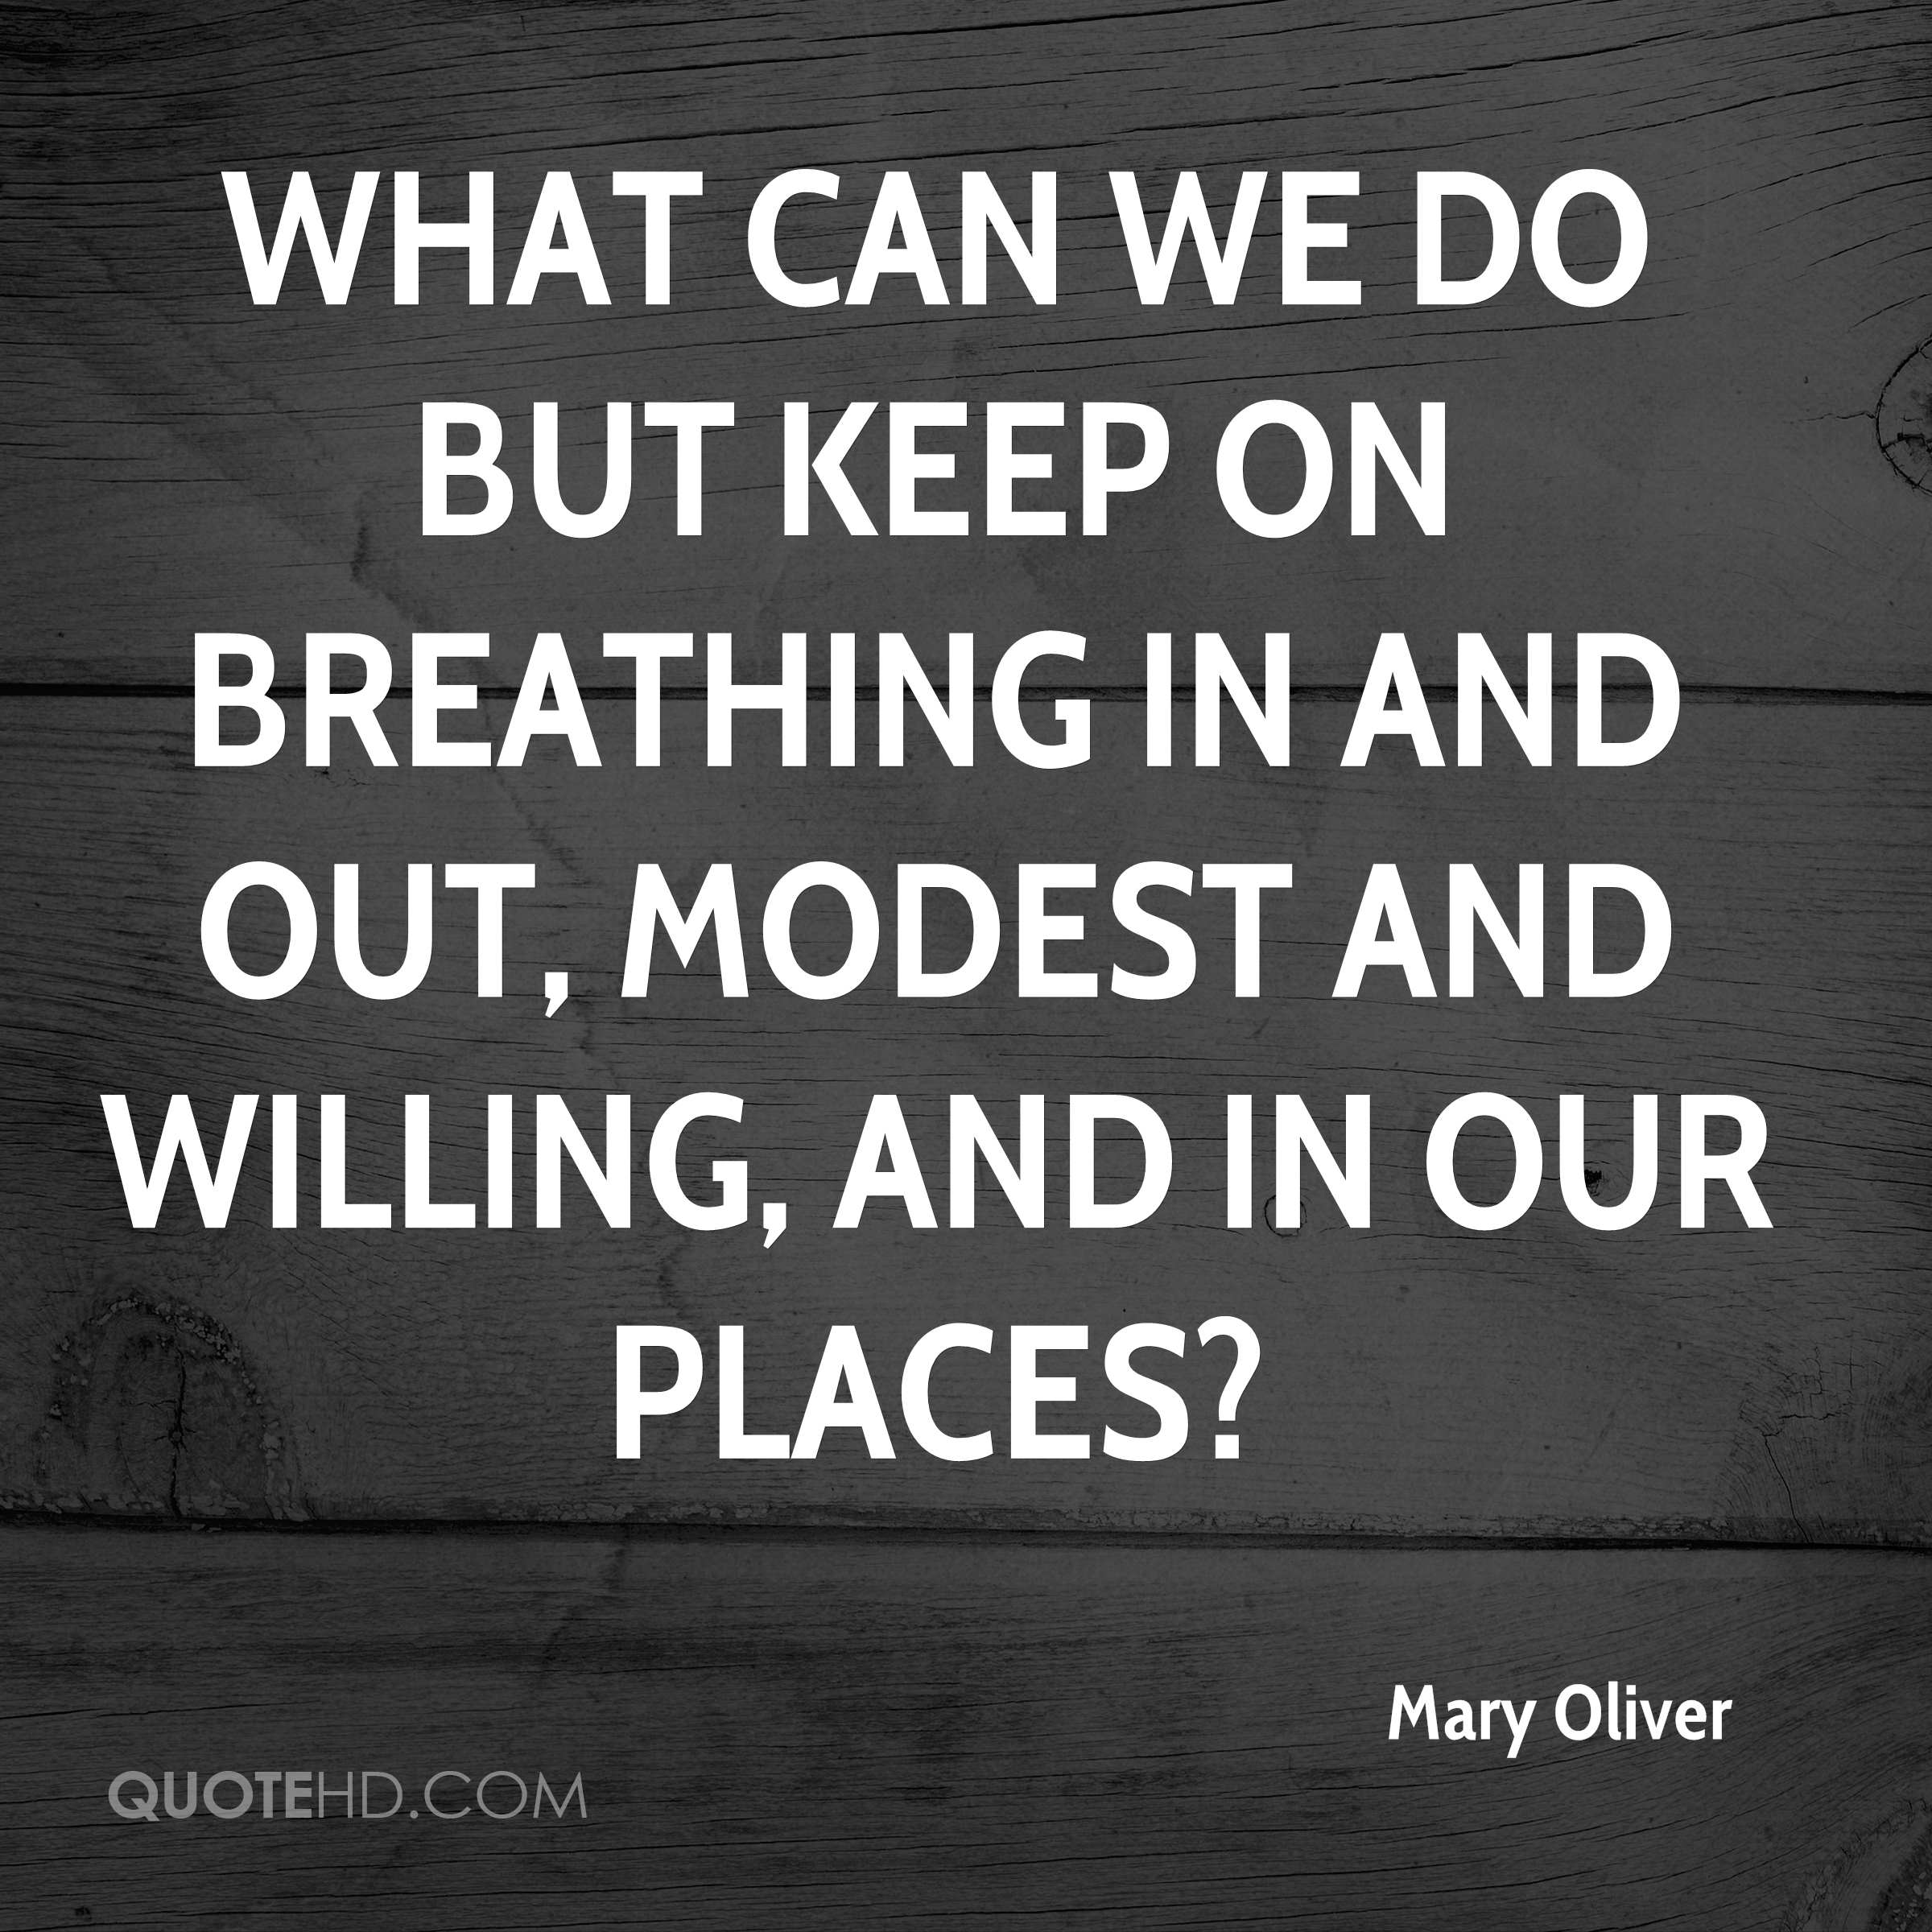 What can we do but keep on breathing in and out, modest and willing, and in our places?